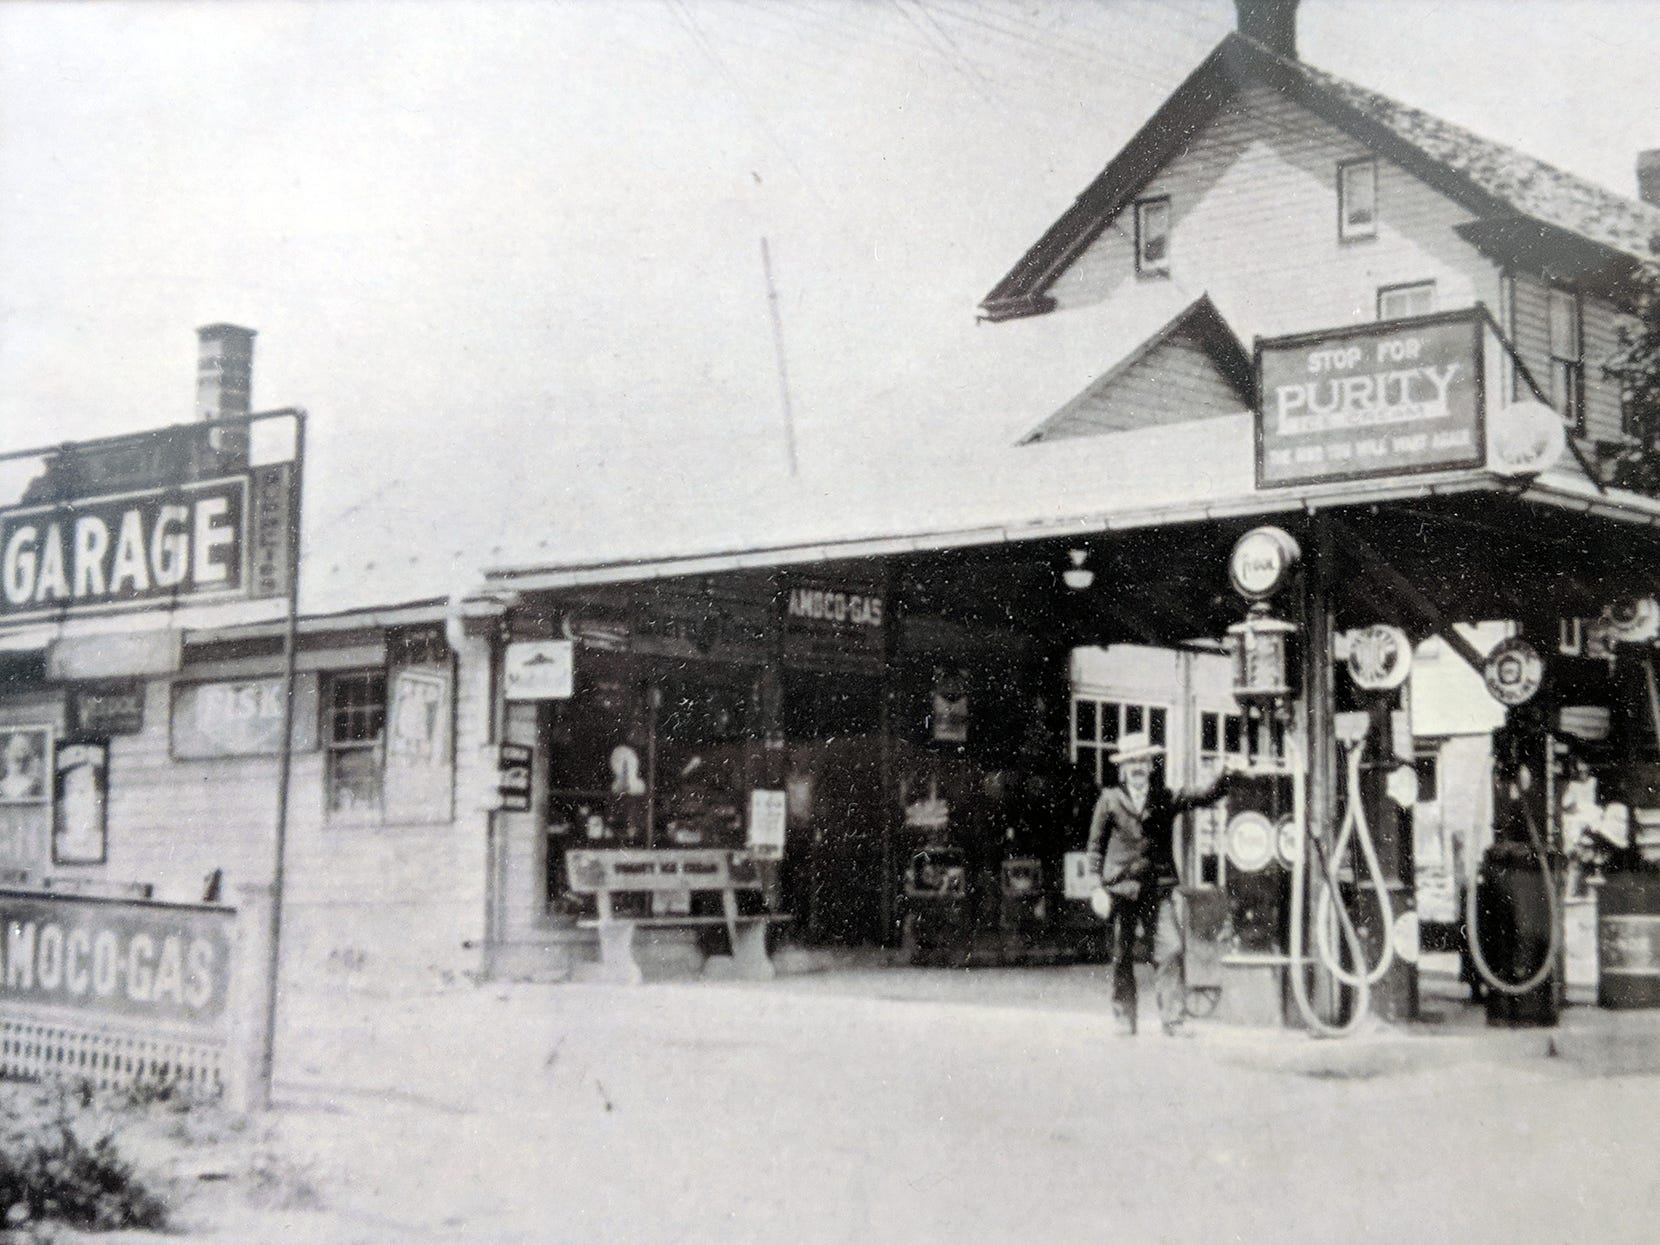 Bruce V. Smith and his wife, Ethel R. Glatfelter Smith , founded the business in 1932 when they bought this gas station and general store in Jacobus from Bruce's grandfather, George Smith. This is how the building looked when it was first purchased. Over the next 87 years, Smith's businesses evolved into Smith Village on the same location.